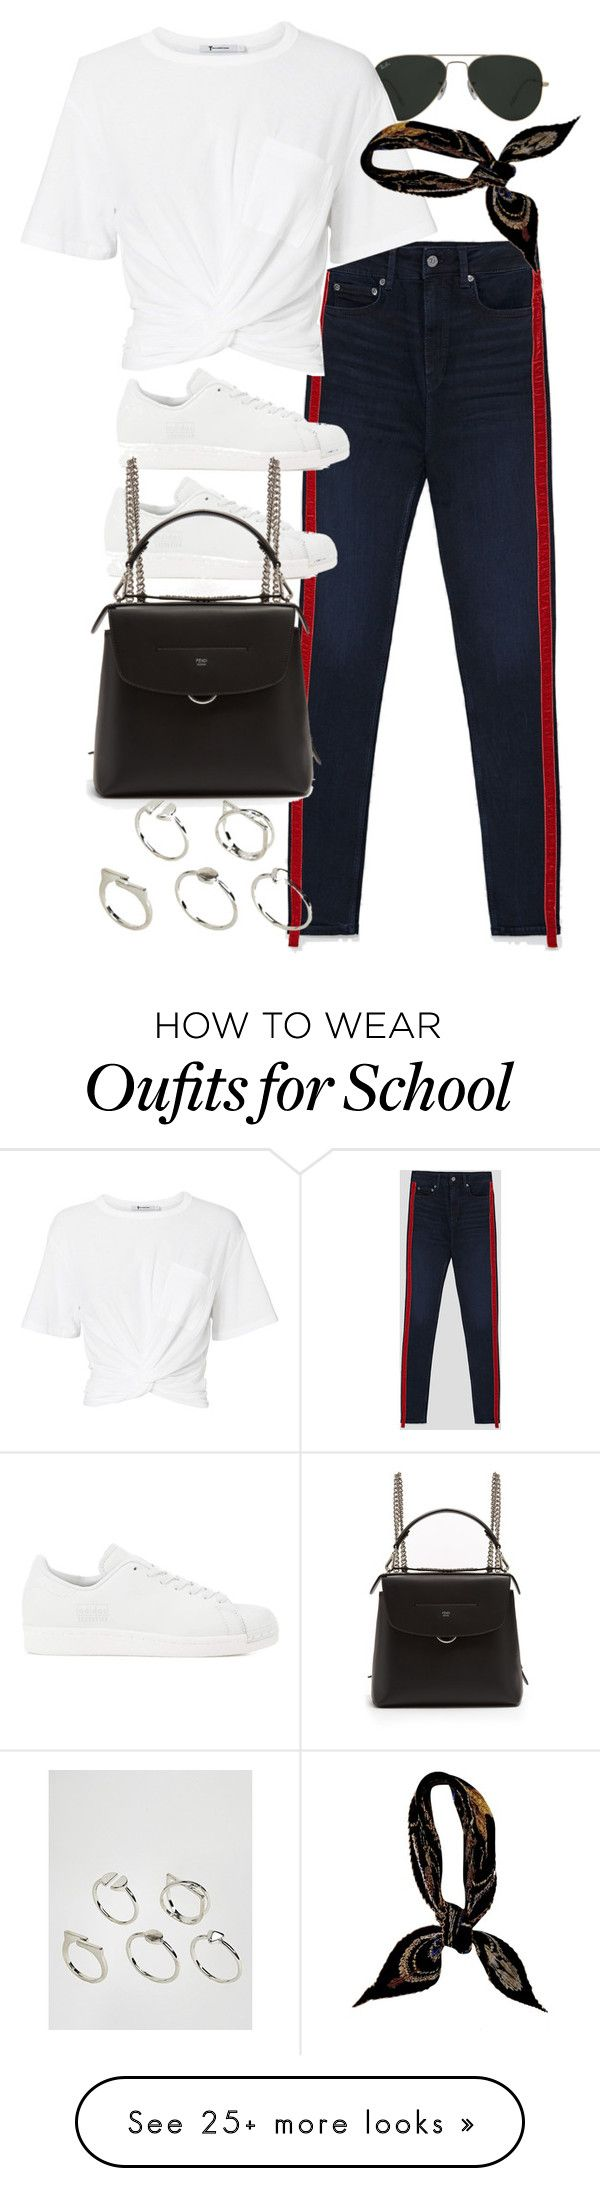 """""""Untitled #11265"""" by nikka-phillips on Polyvore featuring Ray-Ban, T By Alexander Wang, adidas Originals, Fendi, Hermès and ASOS"""